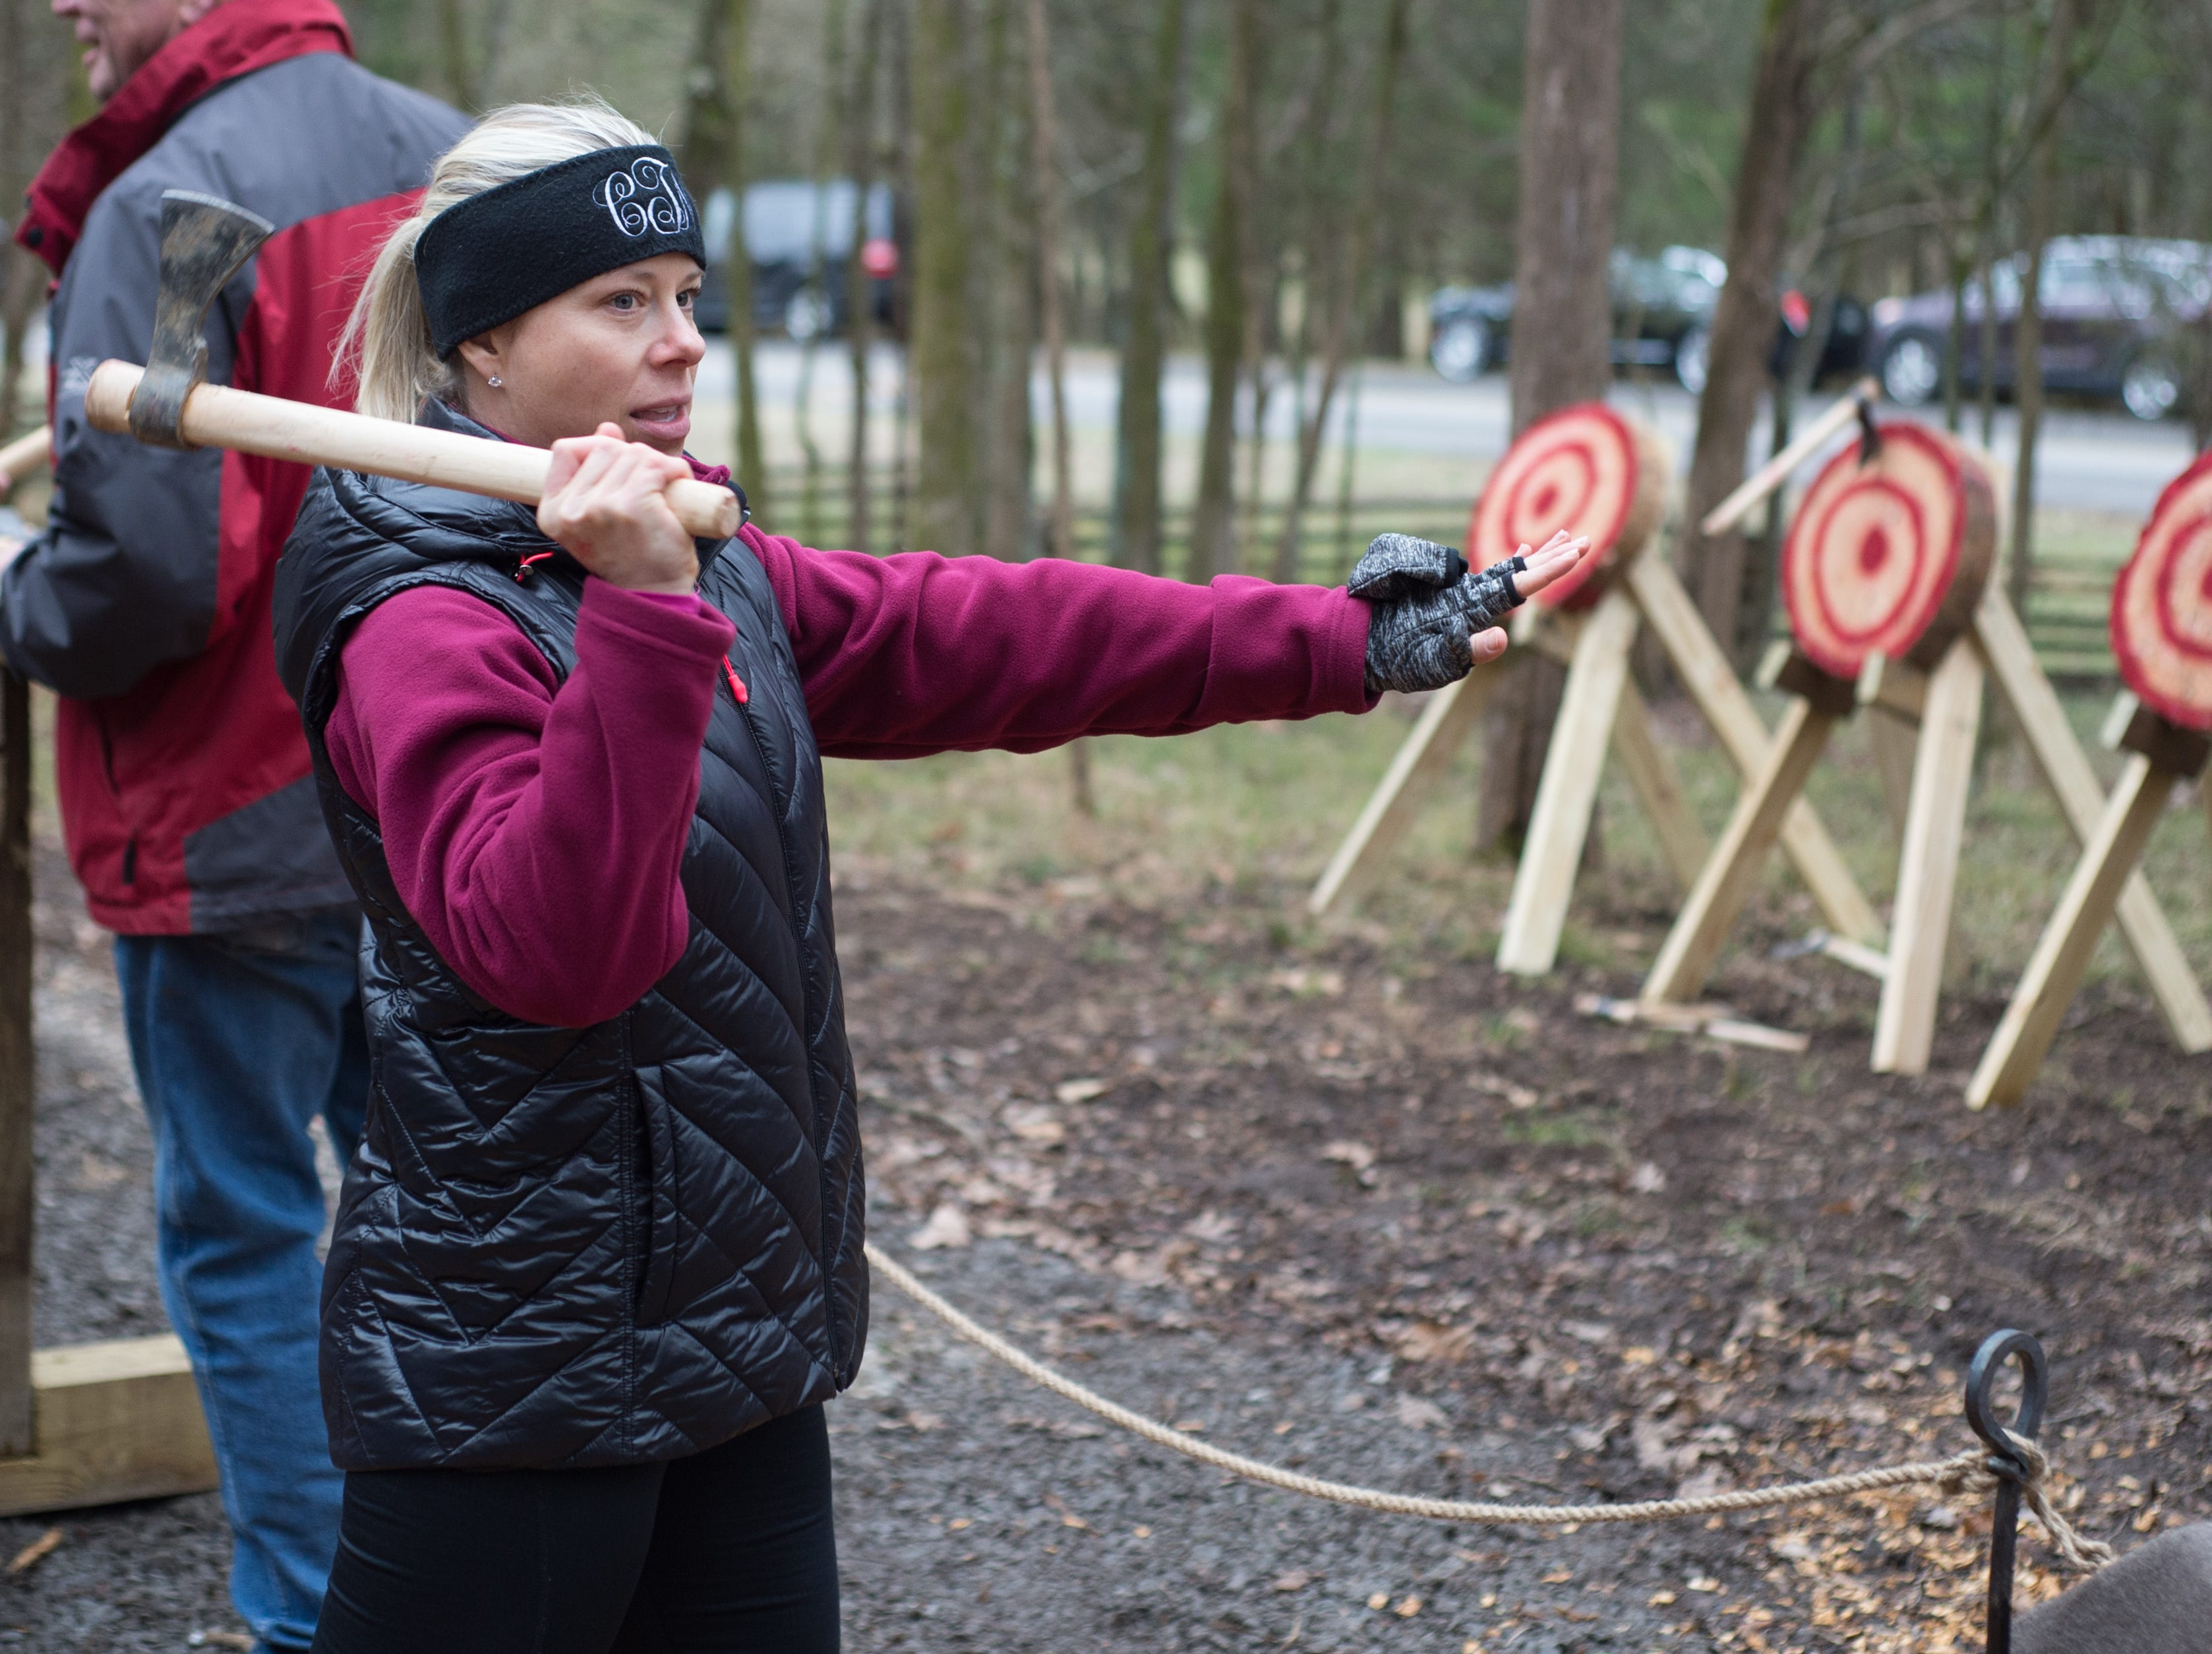 Candice Thurman learns good technique during a Tomahawk Throwing for Beginners event hosted by Middle Tennessee History Coalition at Bledsoe Creek State Park on Saturday, Jan. 12.